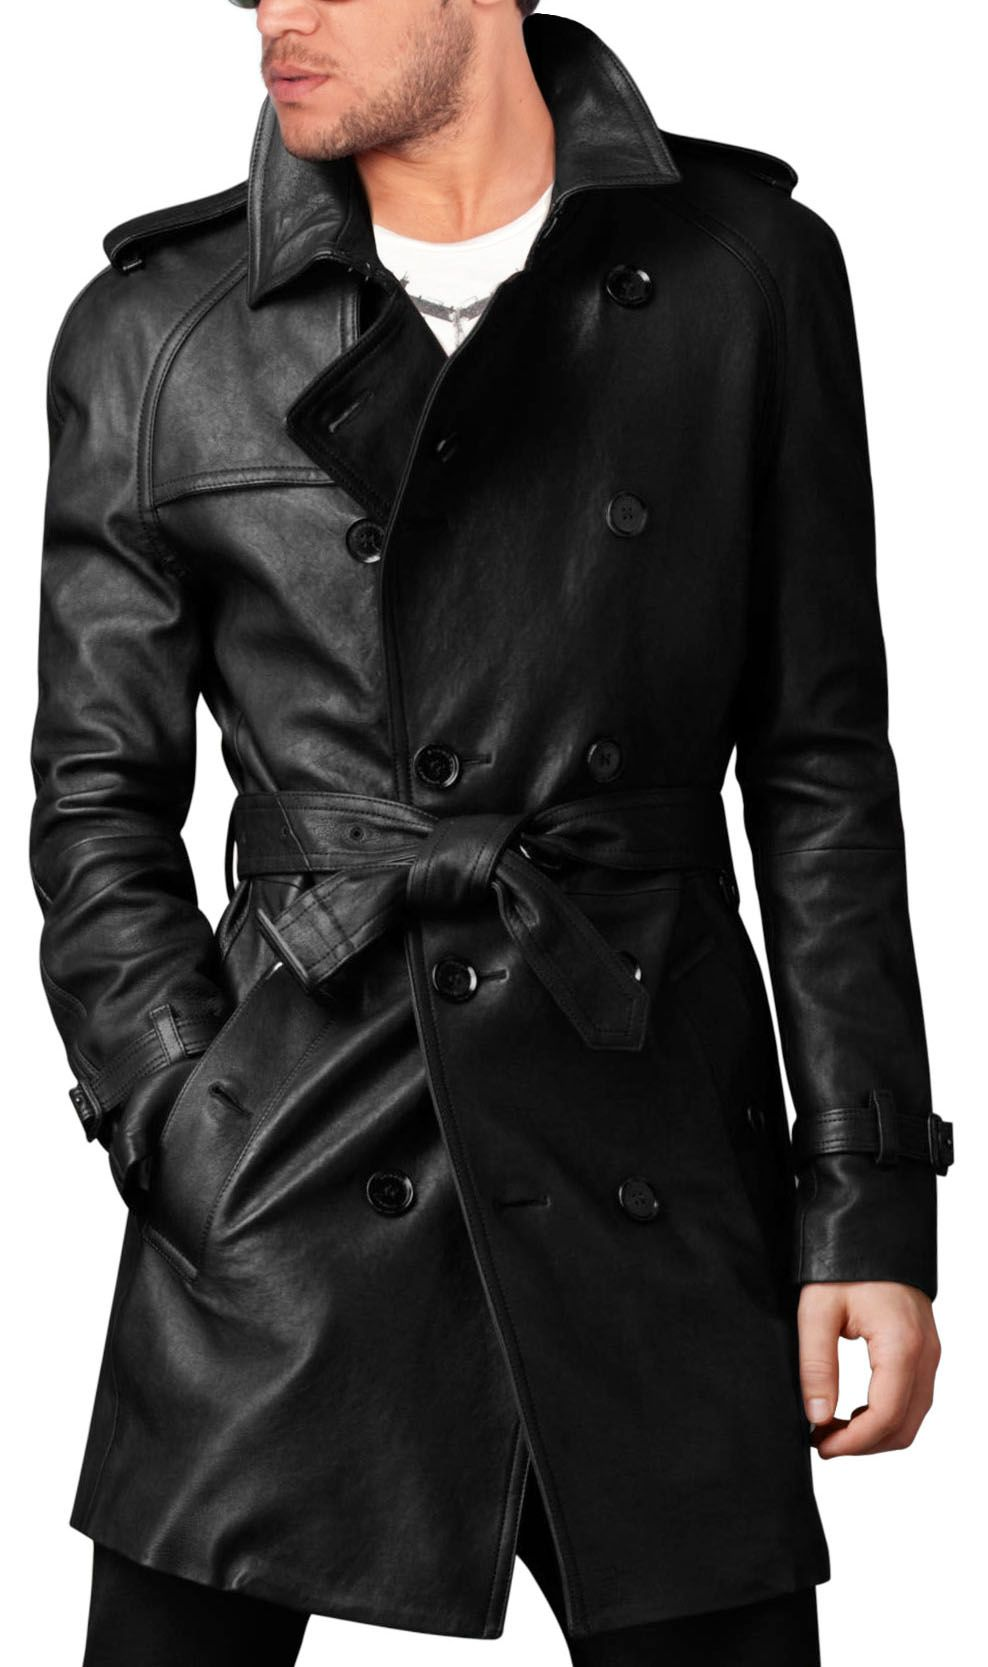 Buy Leather Coat